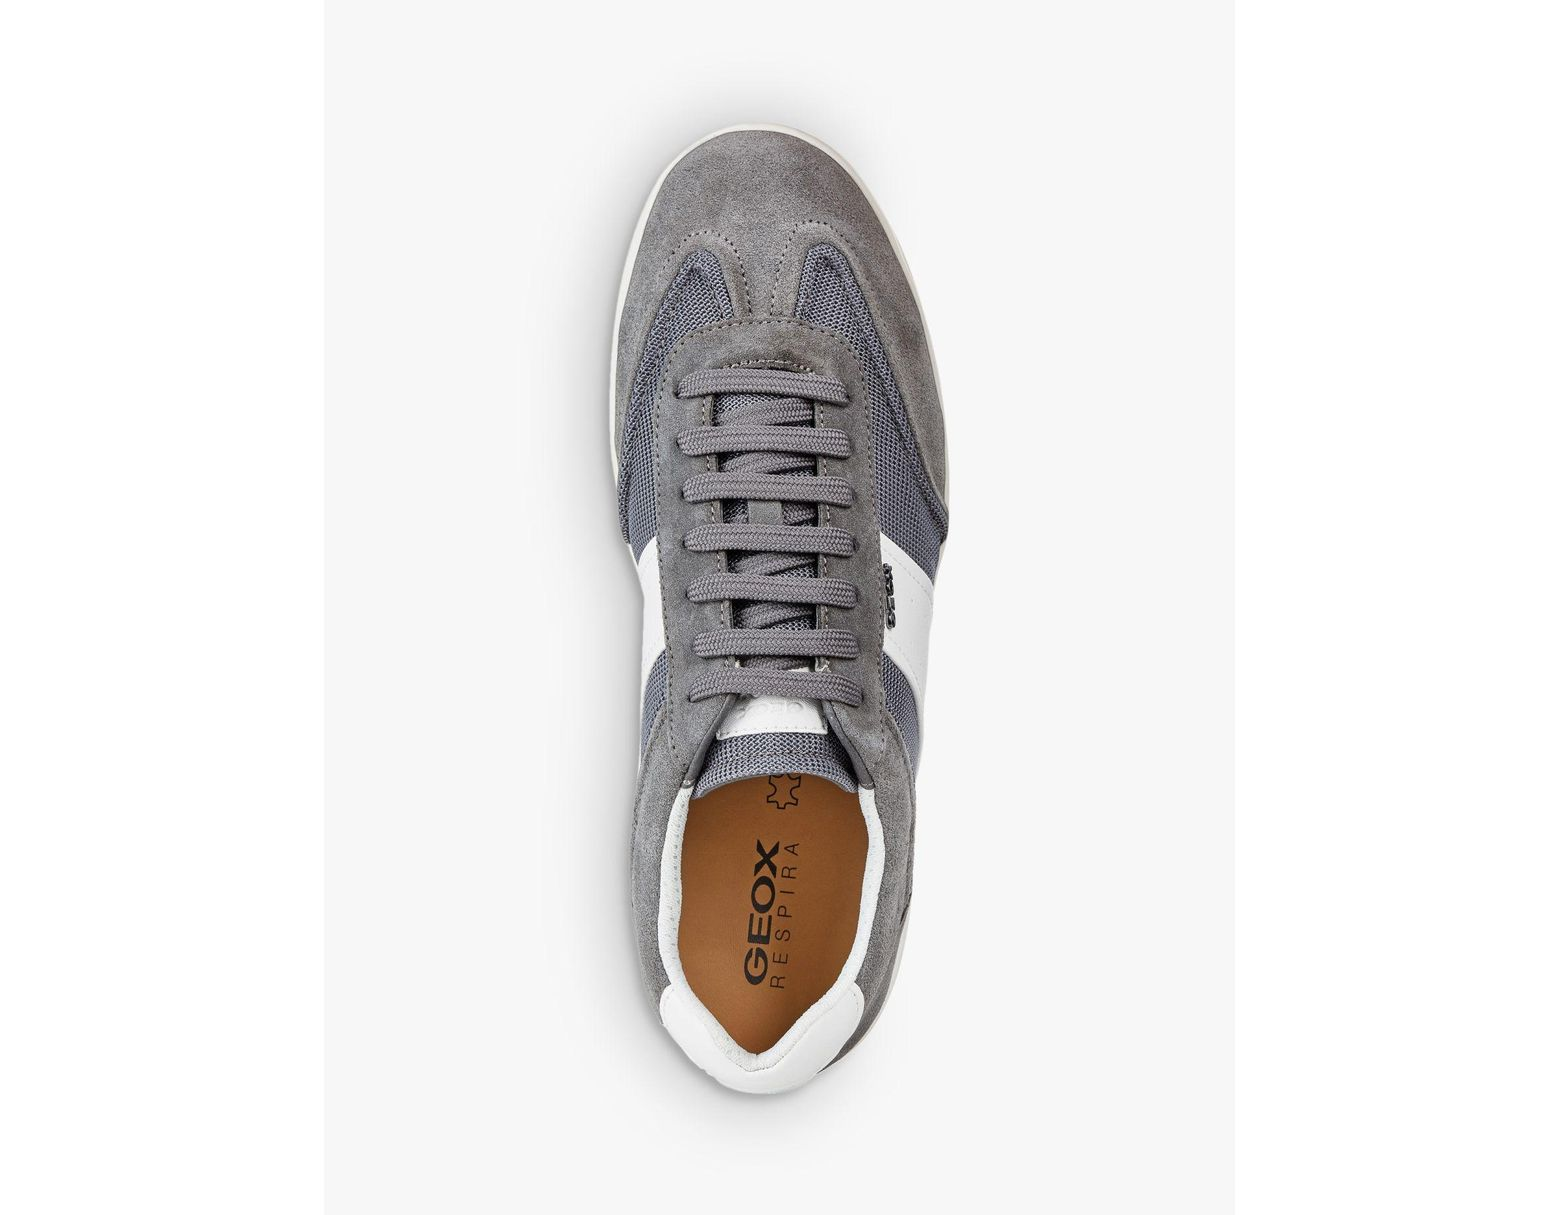 0d7ff0a9824 Geox Kennet Textile Detail Trainers in Gray for Men - Save 45% - Lyst